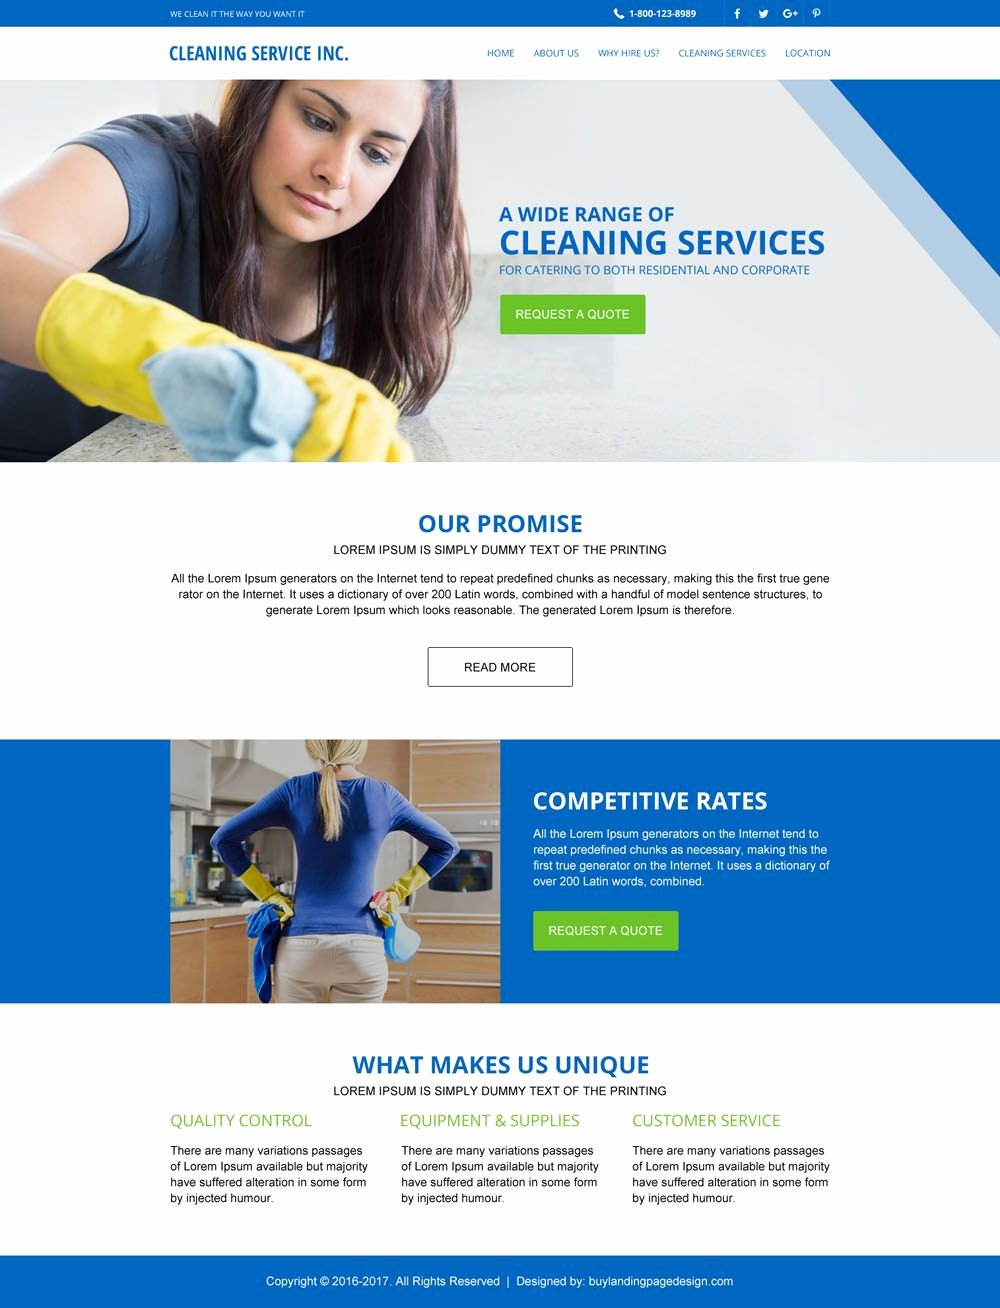 Cleaning Company Website Template Luxury Cleaning Services Website Template Added to